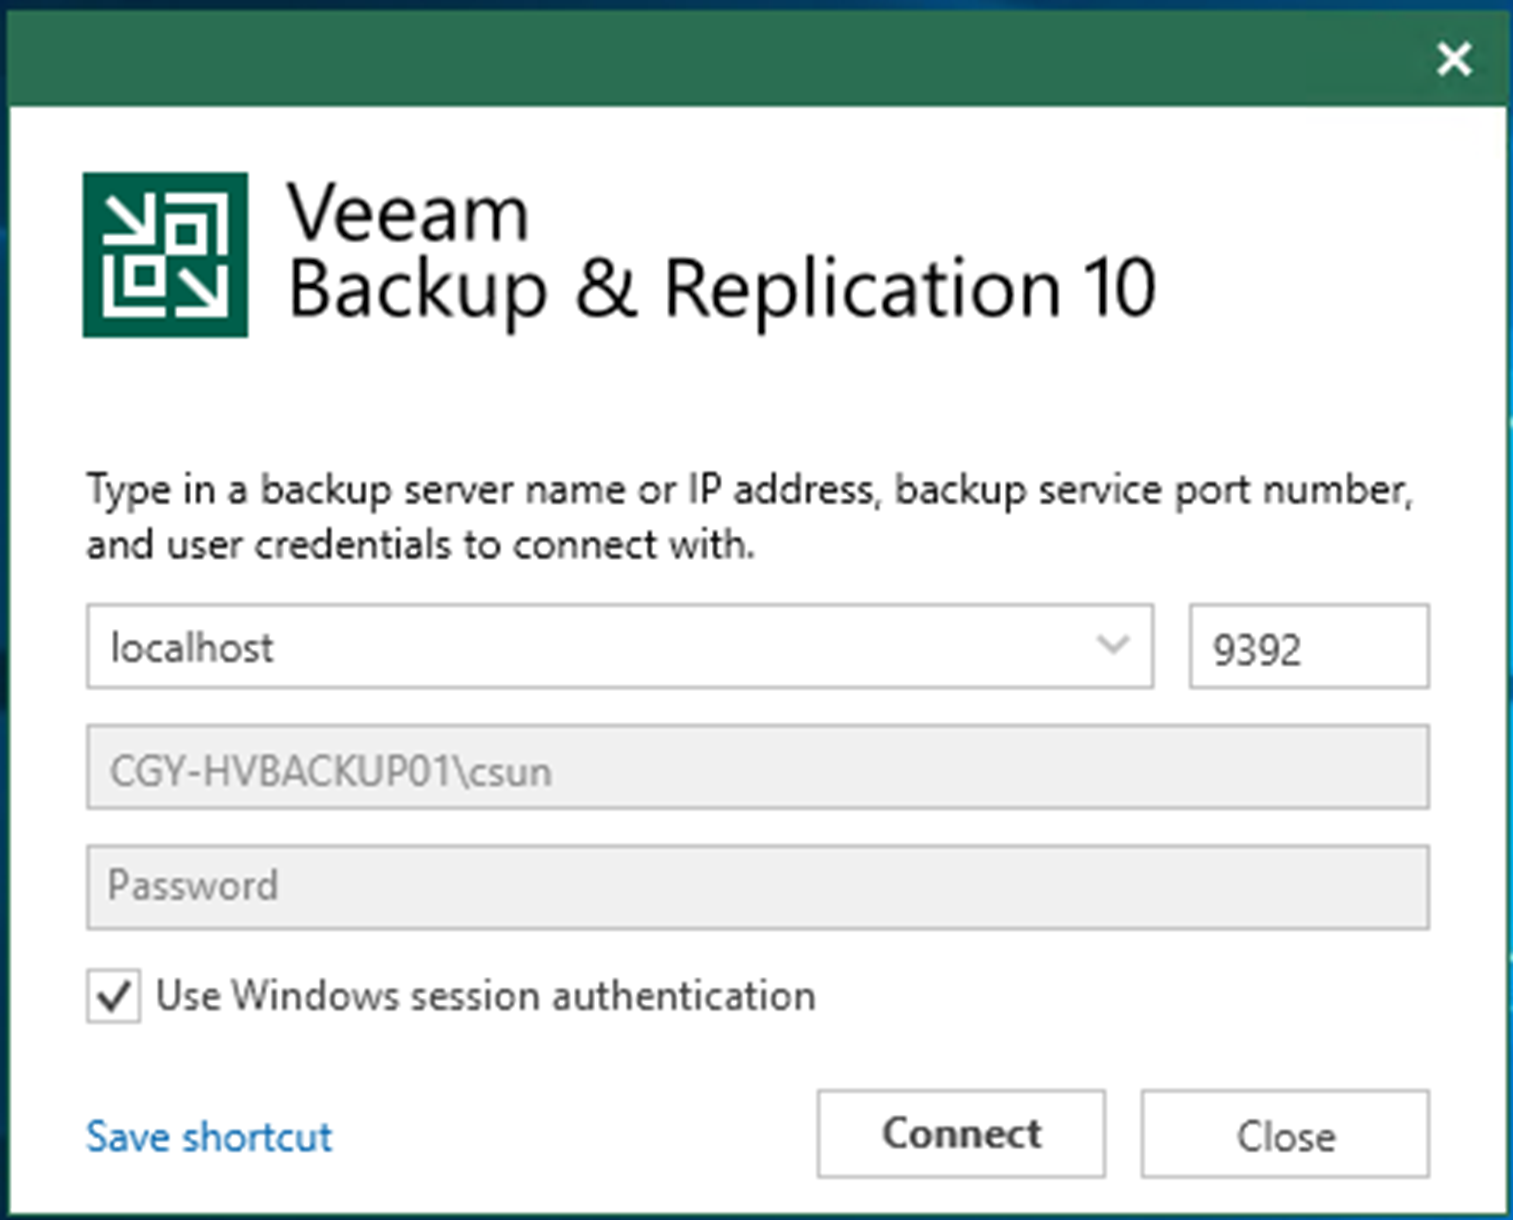 100320 1854 HowtoInstal19 - How to Install (Upgrade) Veeam Backup and Replication V10a #Veeam #VBR 10a #Hyper-V #WINDOWSERVER #Azure #AWS #NAS #VMWARE #vCloud #Azure Stack #Linux